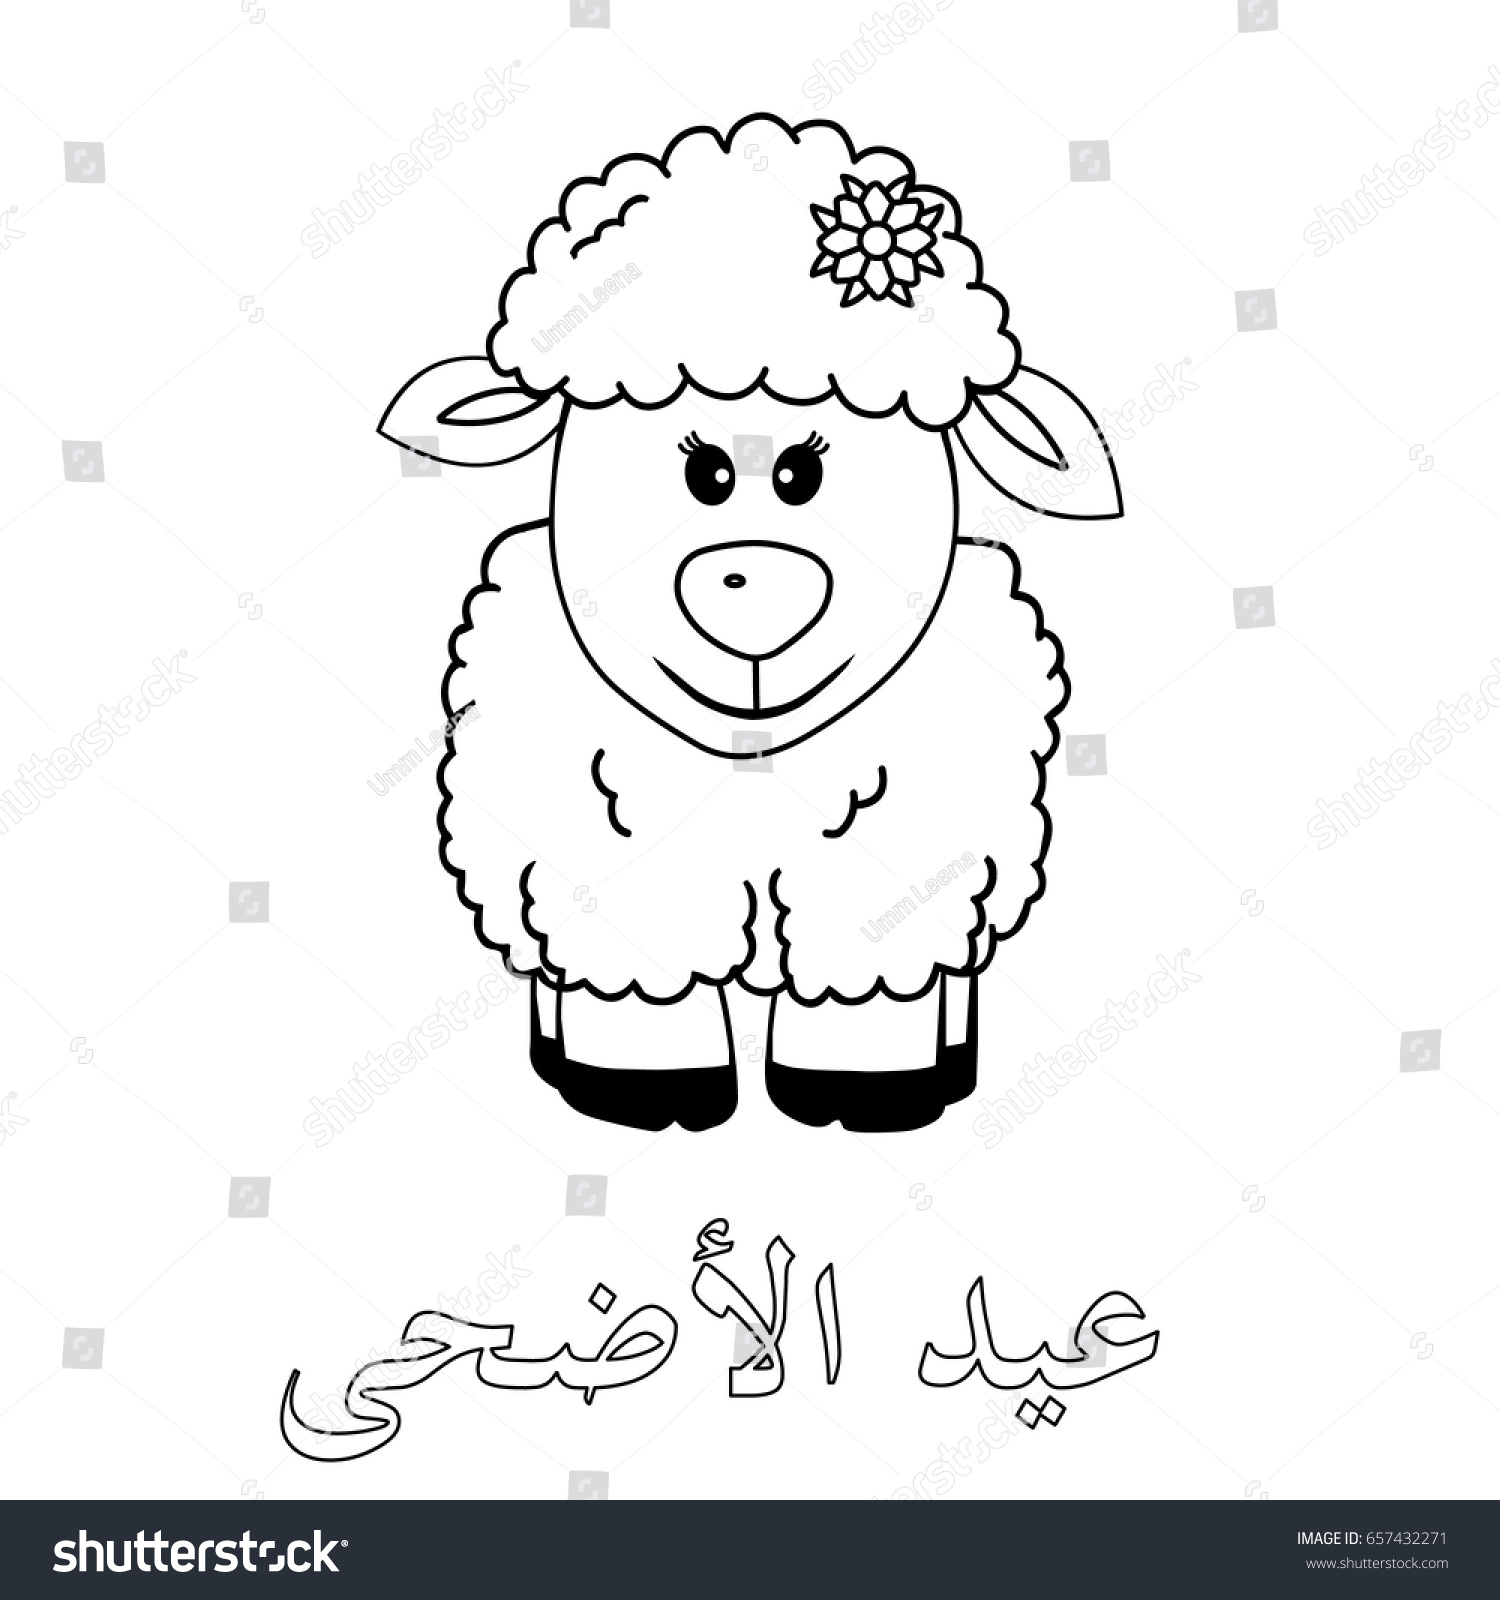 islamic coloring sheep arabic calligraphy black stock vector